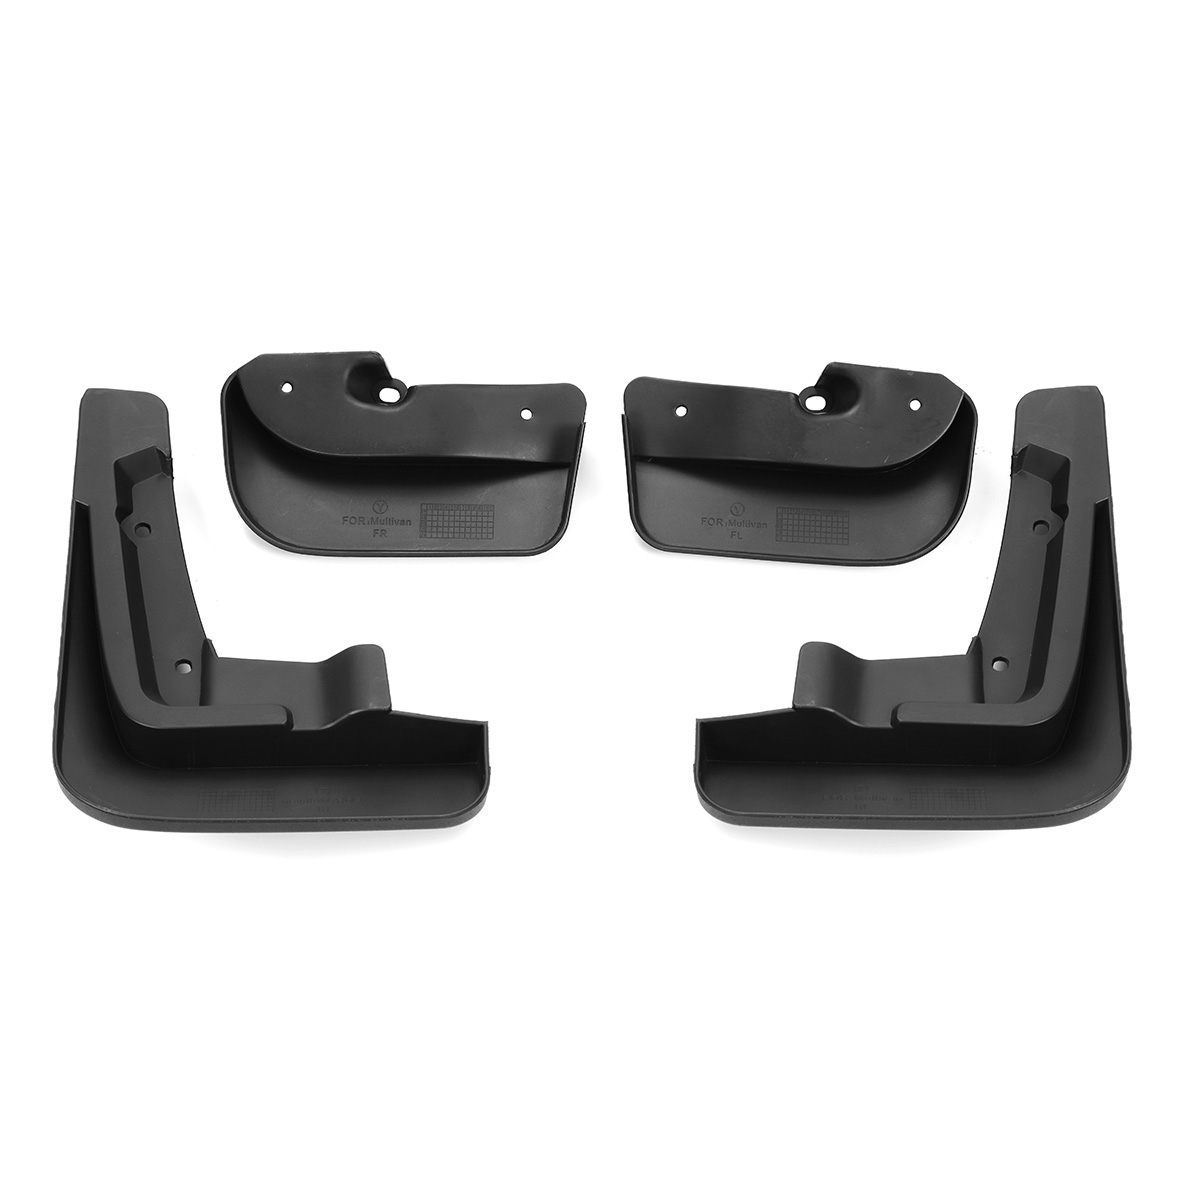 Image 3 - Car Mud Flaps Splash Guards for Fender Mudflaps Mudguards For VW Transporter T6 Caravelle 2016 2017 2018 Mulivan 2017 2018-in Mudguards from Automobiles & Motorcycles